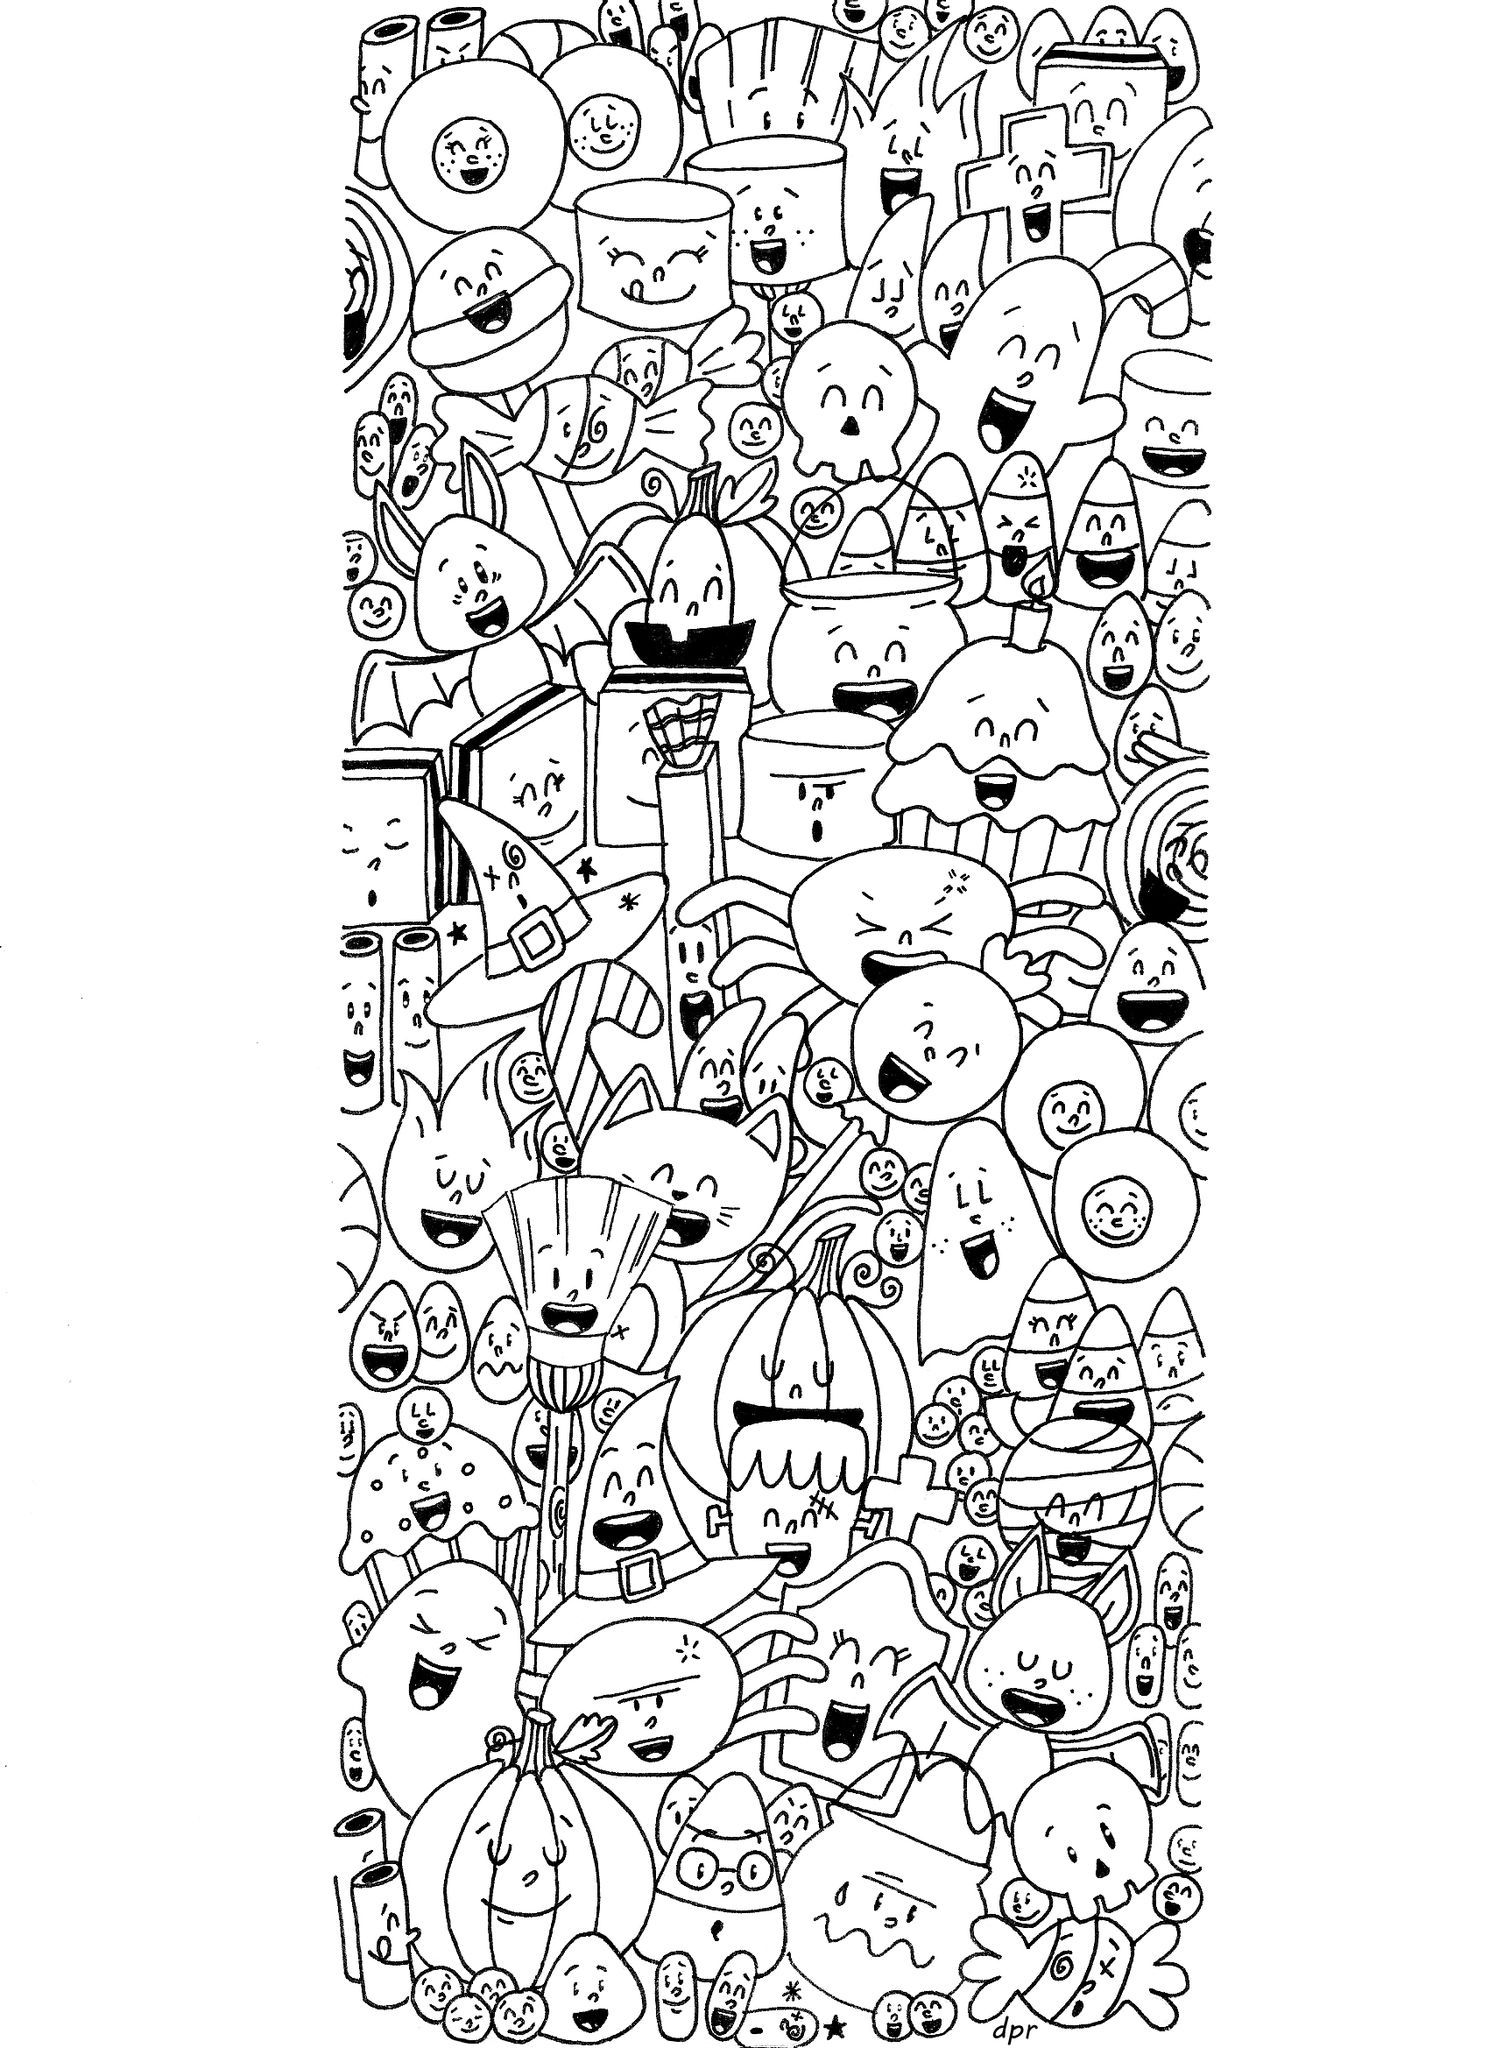 Coloriage halloween coloriage pinterest coloriage - Dessin chat halloween ...